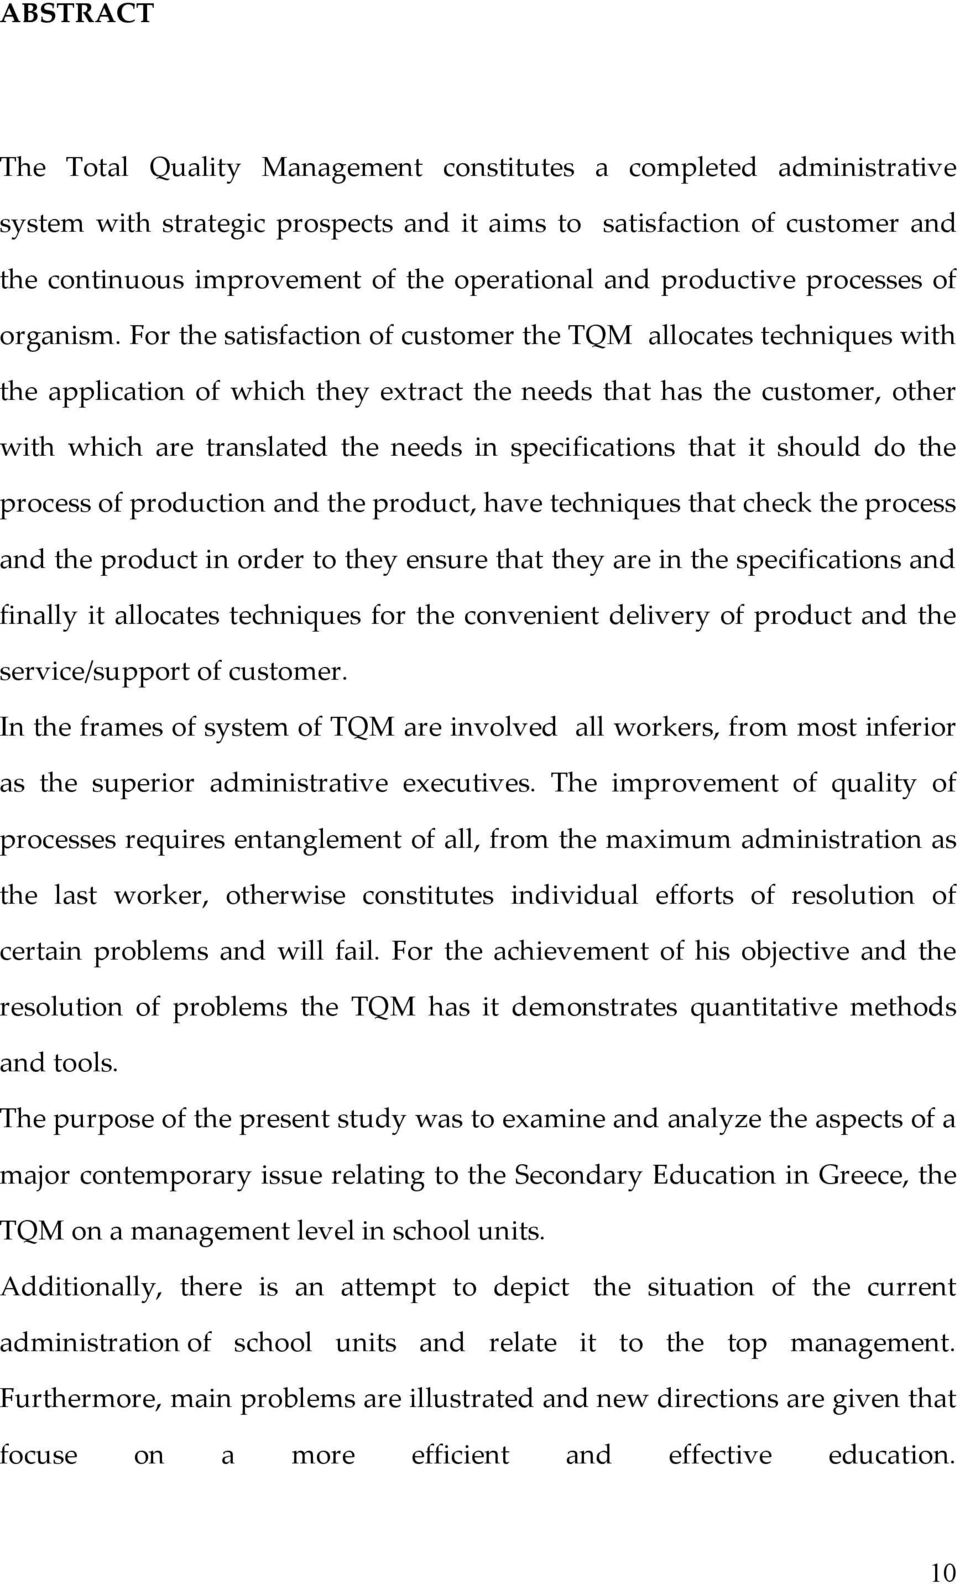 For the satisfaction of customer the TQM allocates techniques with the application of which they extract the needs that has the customer, other with which are translated the needs in specifications